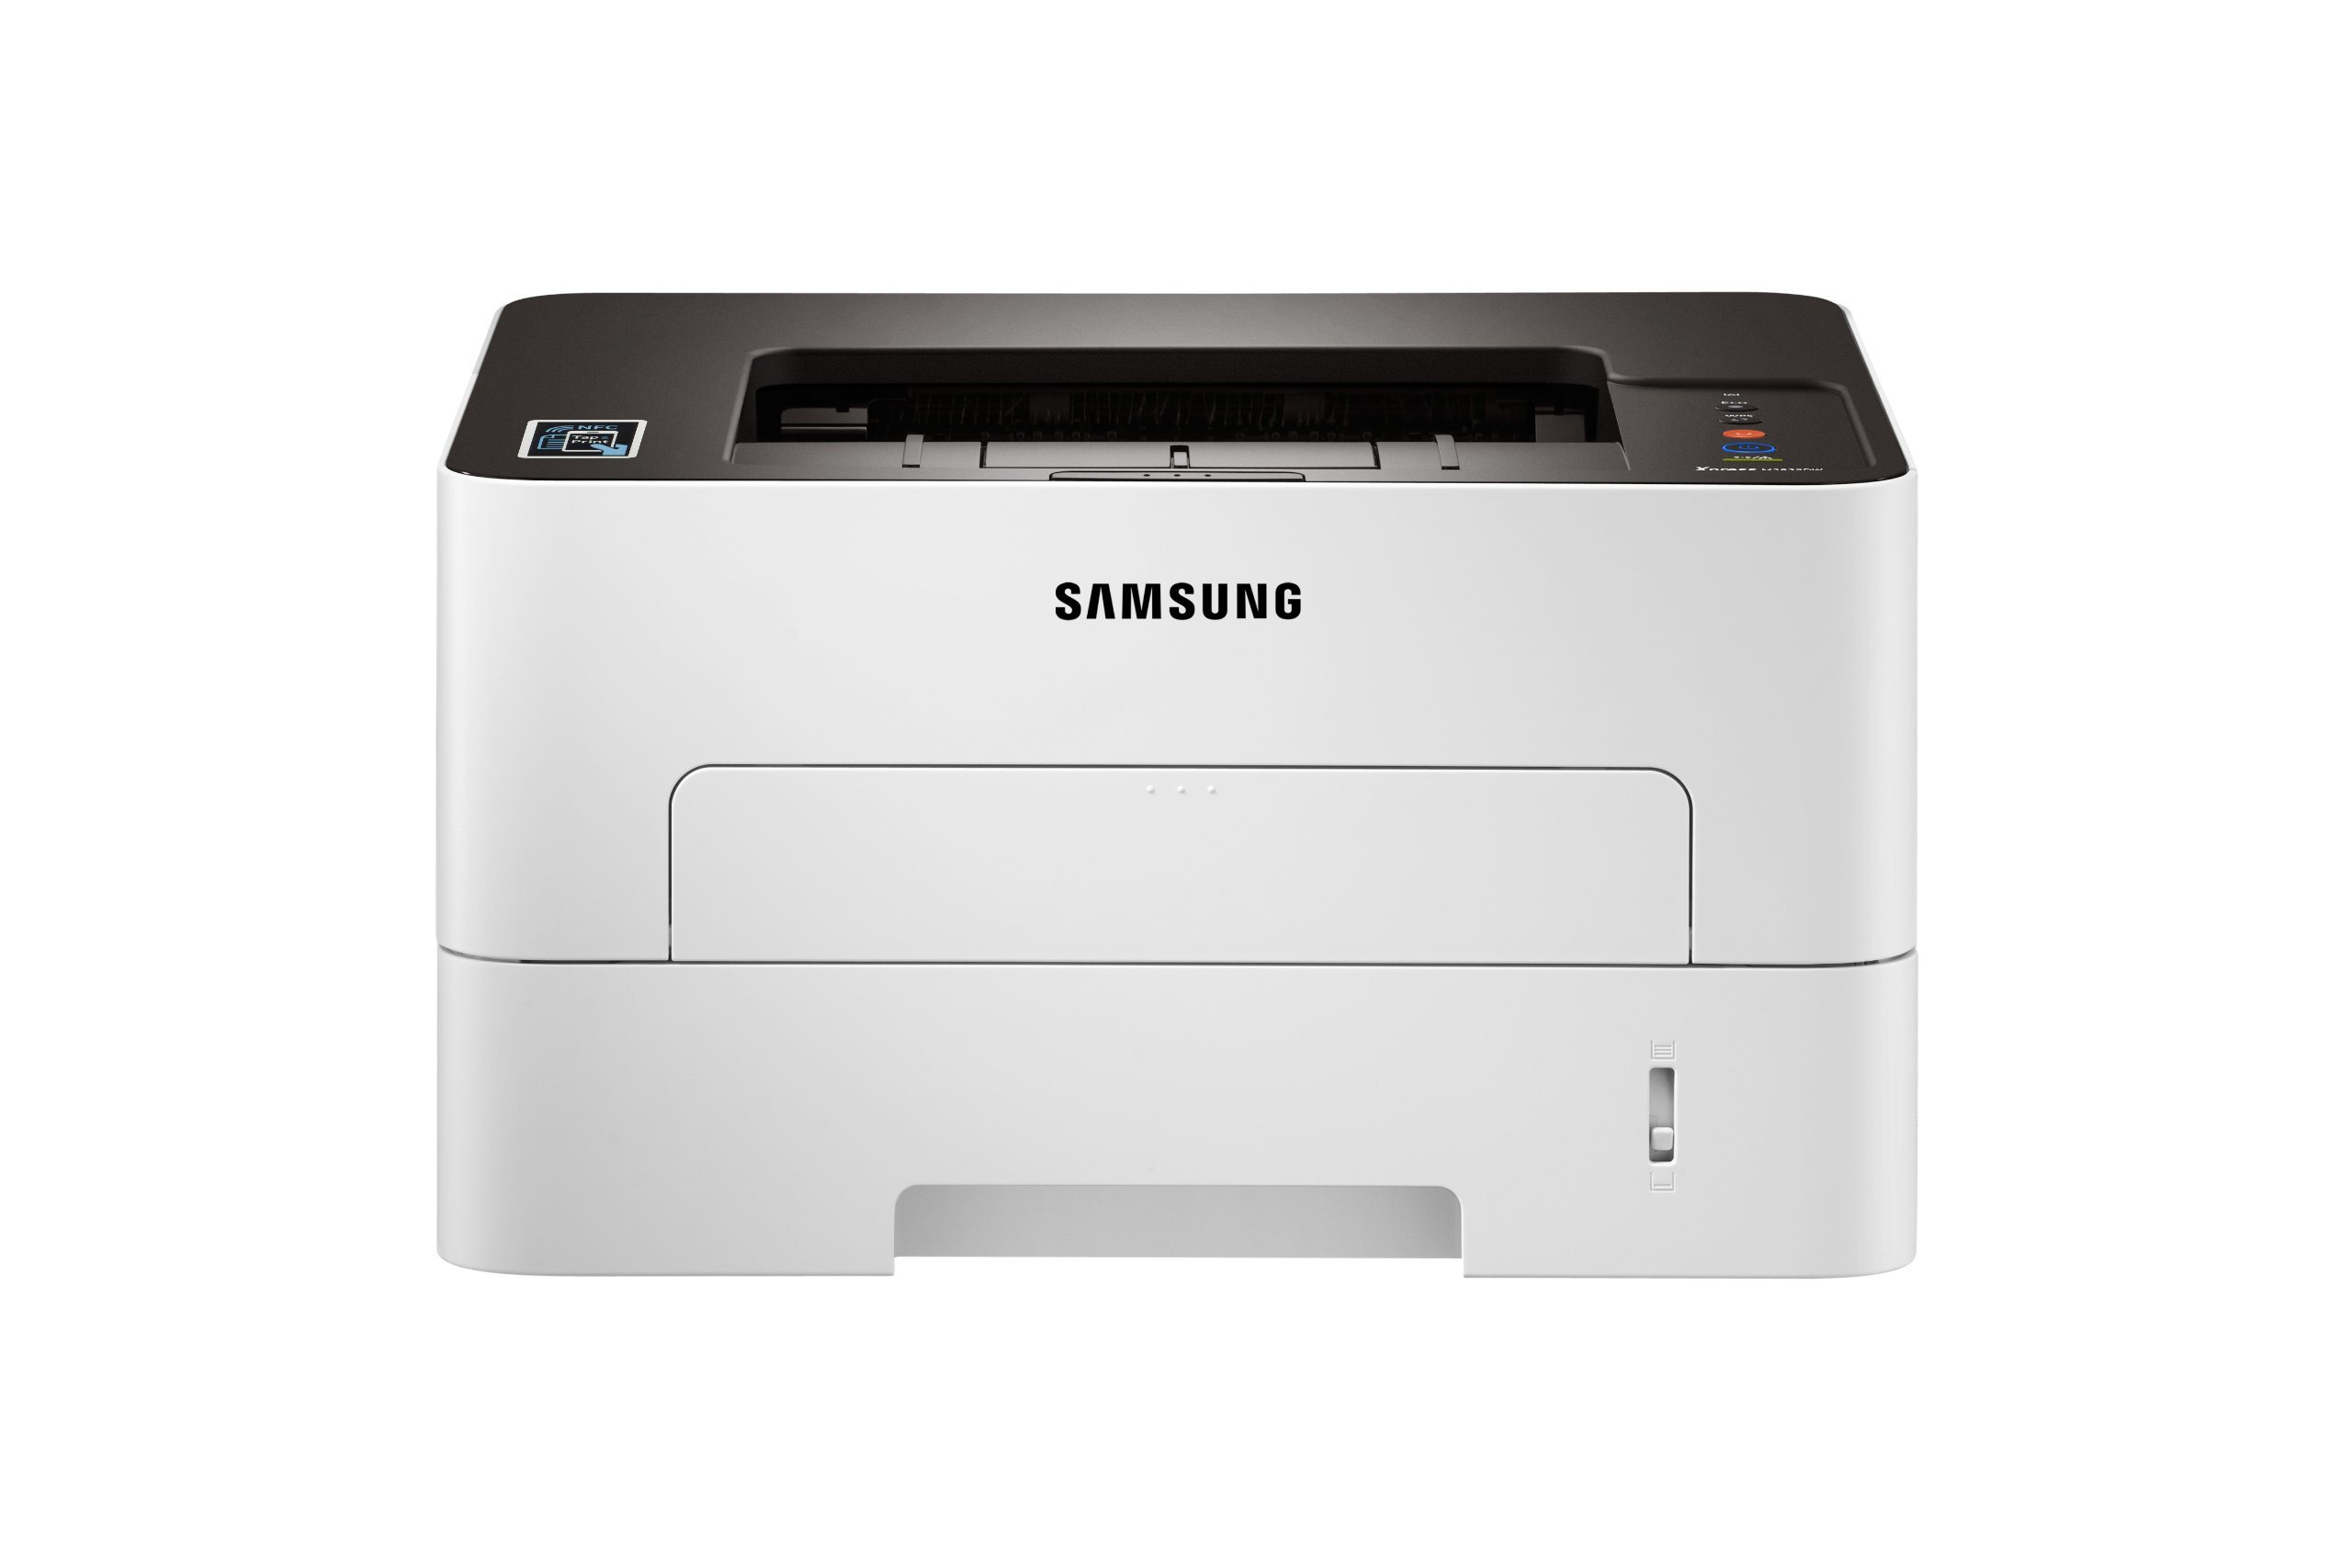 Samsung Xpress M2835DW Wireless Monochrome Laser Printer with Simple NFC + WiFi Connectivity, Duplex Printing and Built-in Ethernet, Amazon Dash Replenishment Enabled (SS346C) (Certified Refurbished)